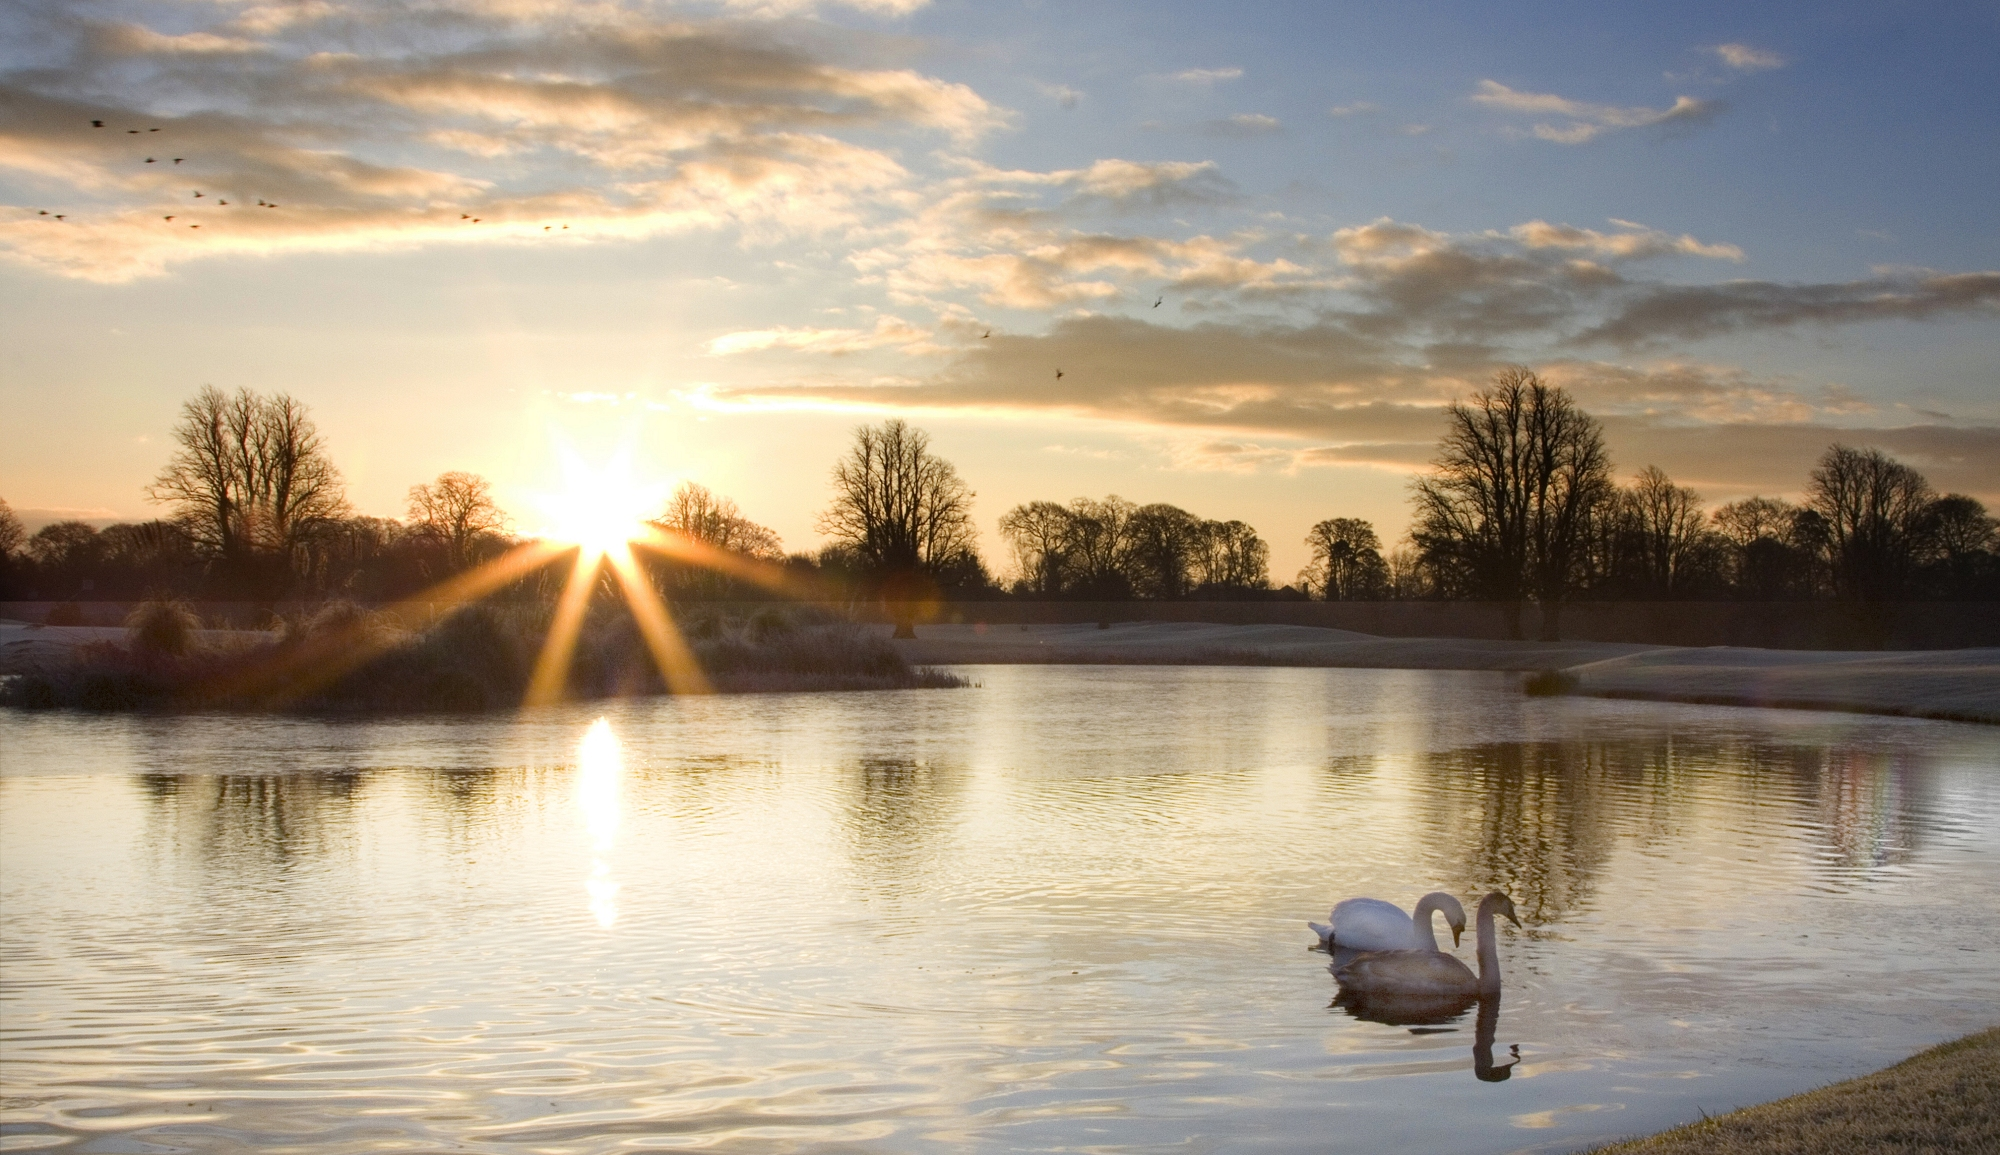 ... Hour Photography, Morning, Swans on Lake during Golden Hour Photo